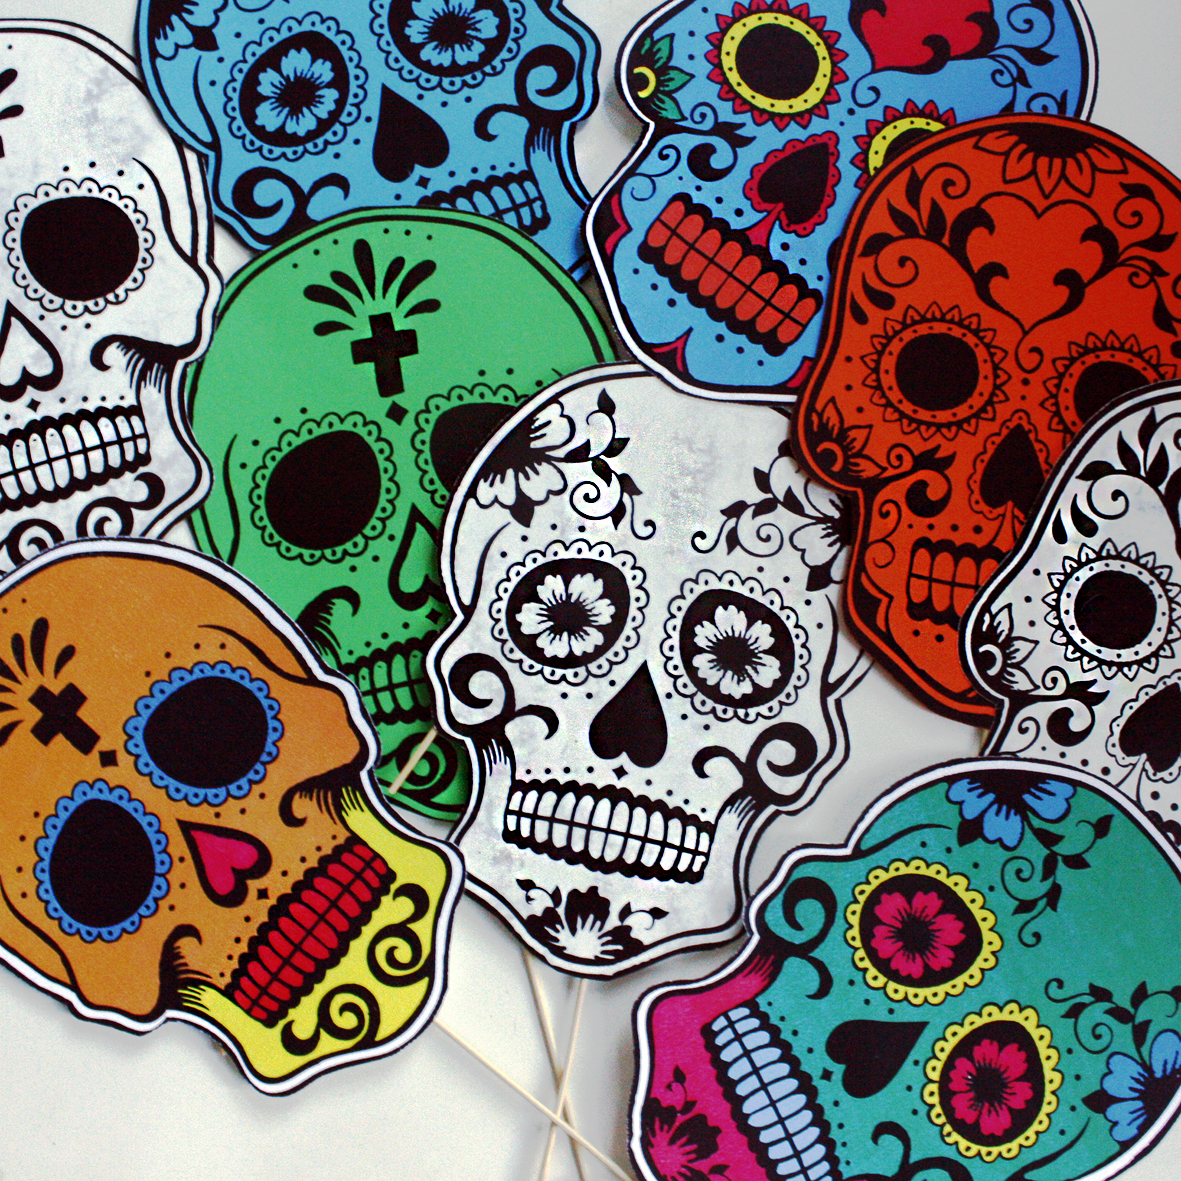 we made our own halloween masks inspired by the equivalent mexican festival da de los muertos day of the dead